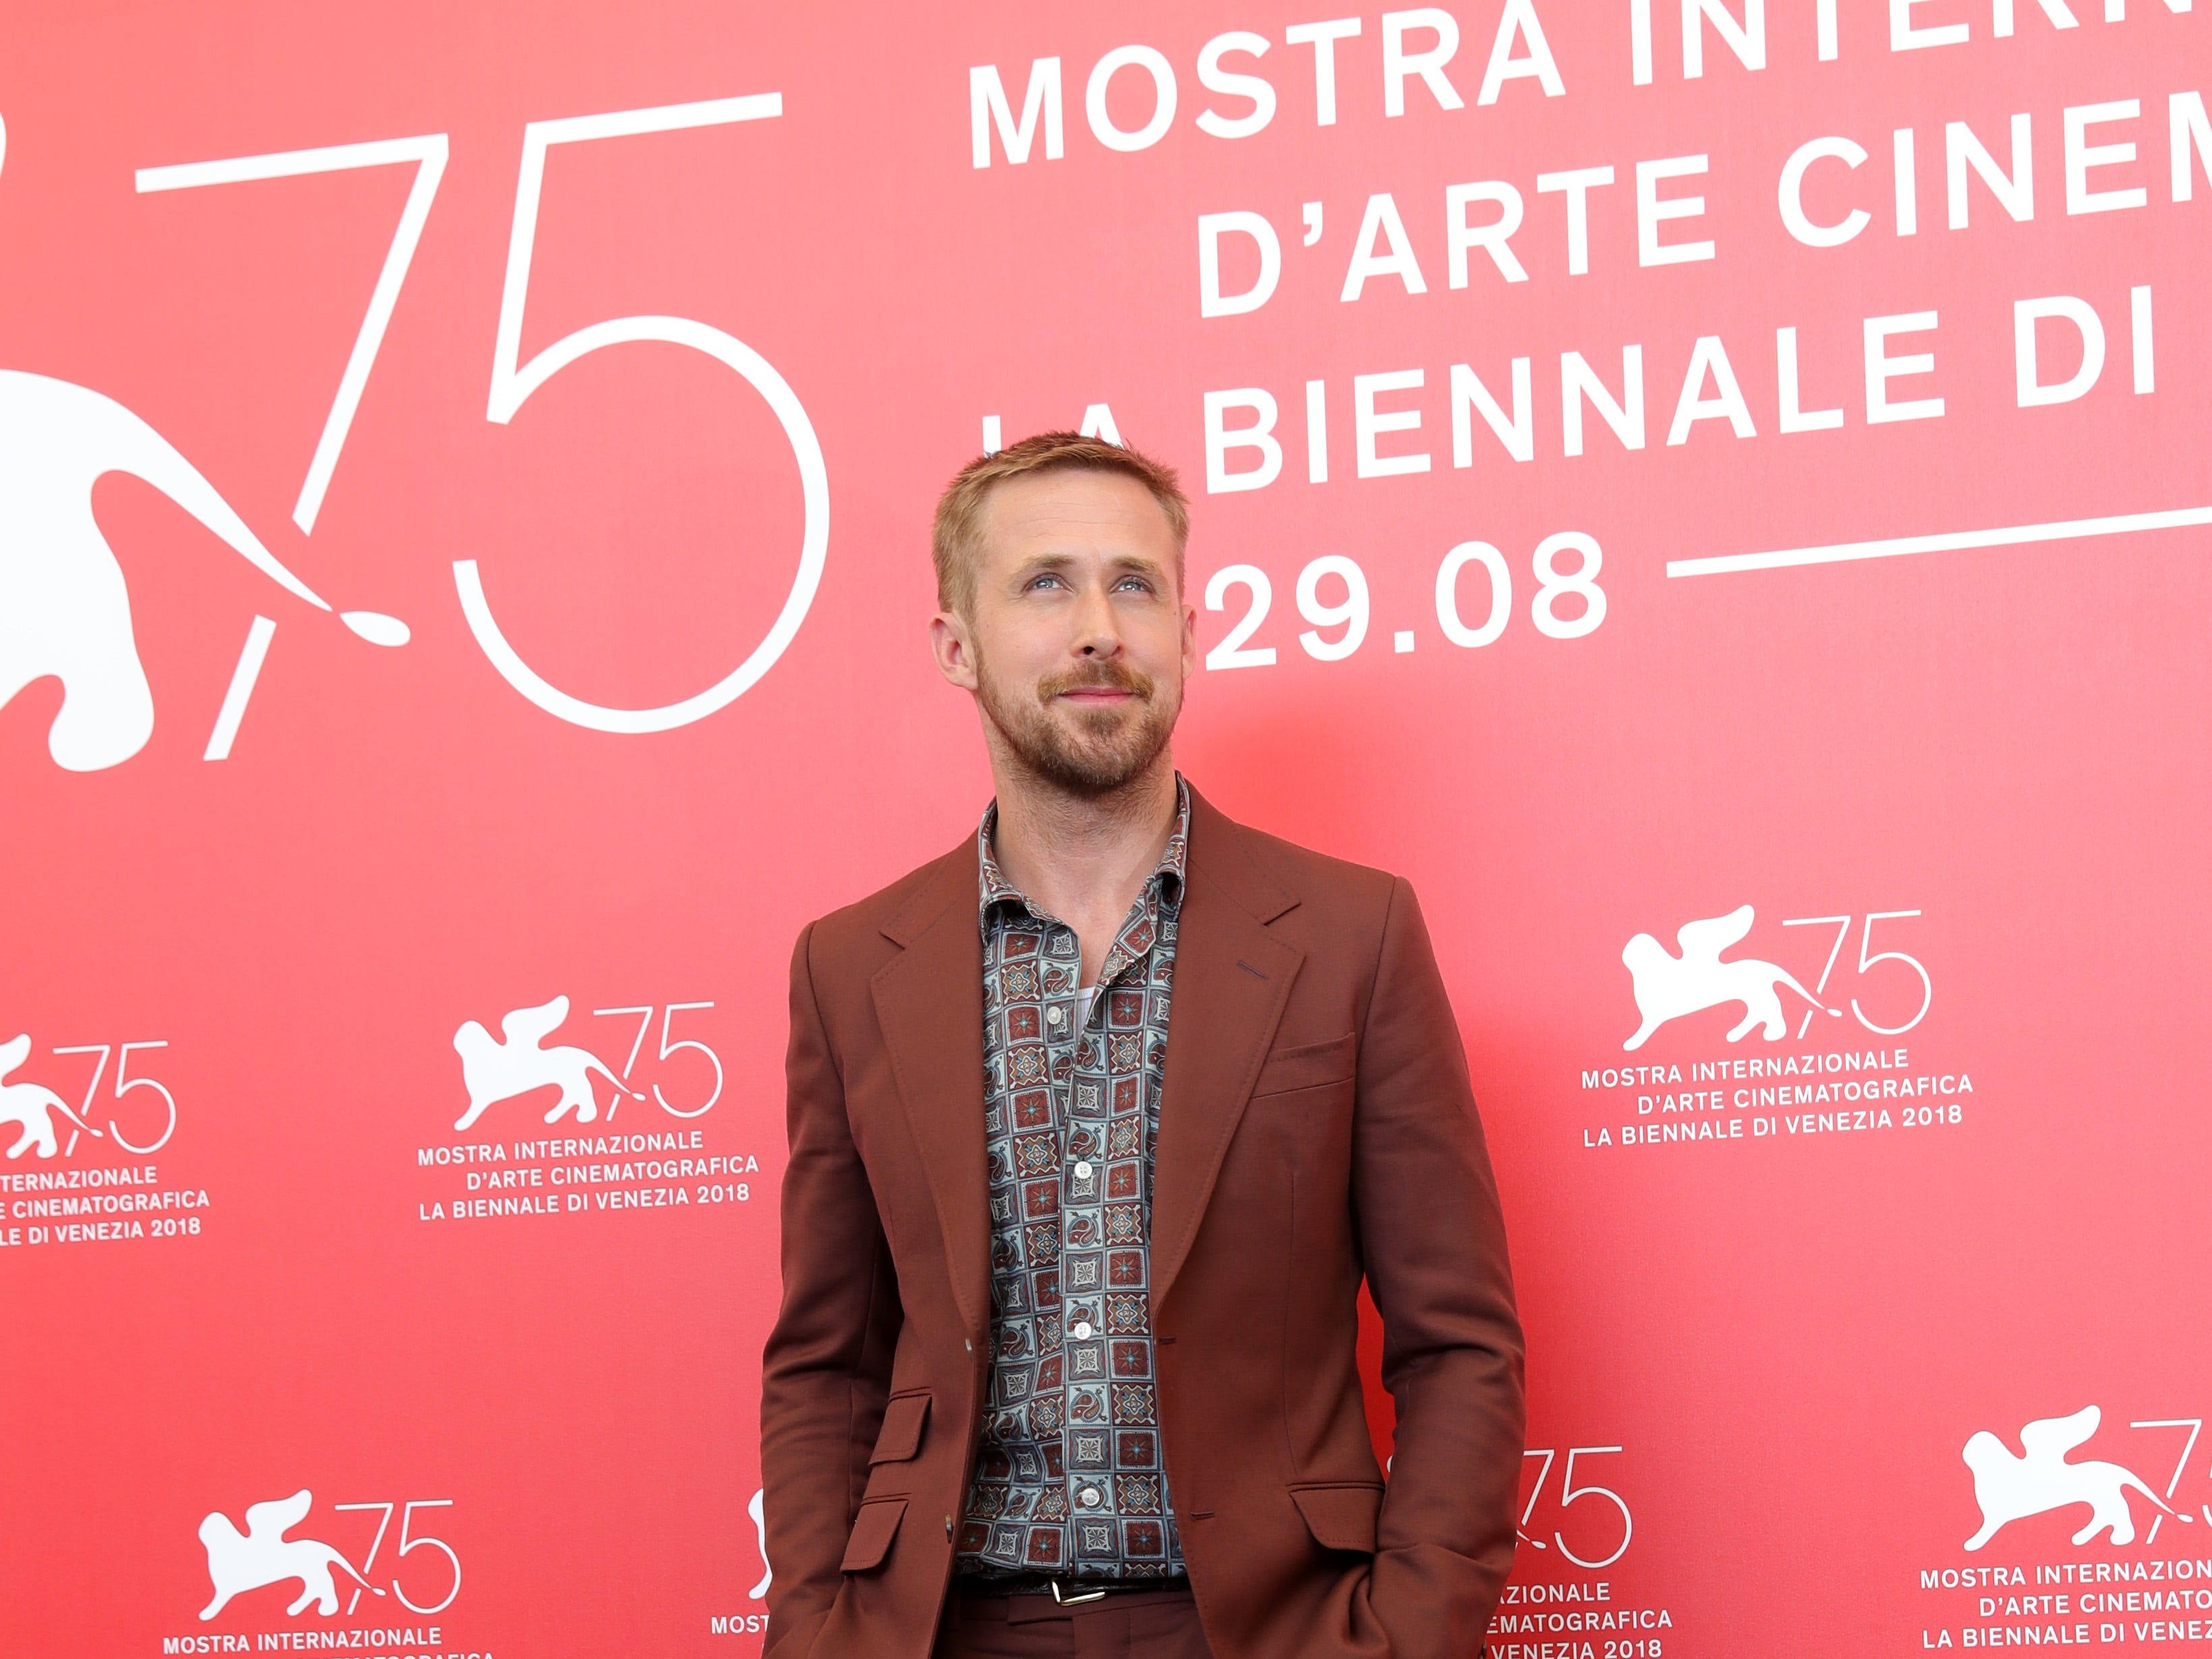 VENICE, ITALY - AUGUST 29:  Actor Ryan Gosling attends 'First Man' photocall during the 75th Venice Film Festival at Sala Casino on August 29, 2018 in Venice, Italy.  (Photo by Vittorio Zunino Celotto/Getty Images) ORG XMIT: 775212315 ORIG FILE ID: 1025010156